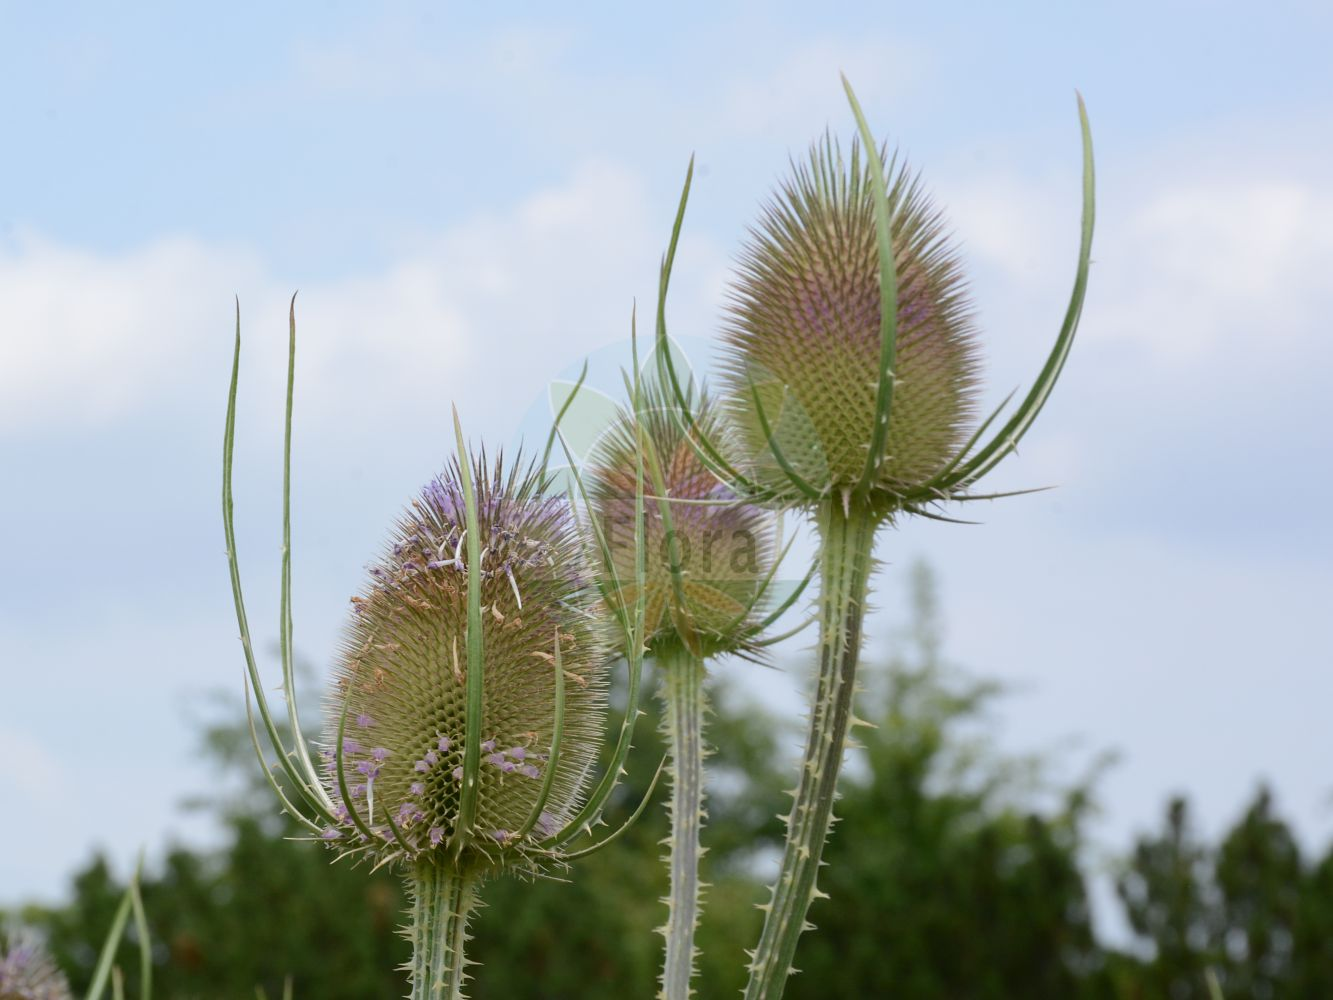 Foto von Dipsacus fullonum (Wilde Karde - Wild Teasel). Das Foto wurde in Berlin, Deutschland aufgenommen. ---- Photo of Dipsacus fullonum (Wilde Karde - Wild Teasel).The picture was taken in Berlin, Germany.(Dipsacus fullonum,Wilde Karde,Wild Teasel,Dipsacus sylvestris,Common Teasel,Fuller's Teasel,Teasel,Dipsacus,Karde,Teasel,Caprifoliaceae,Geissblattgewaechse,Honeysuckle family)